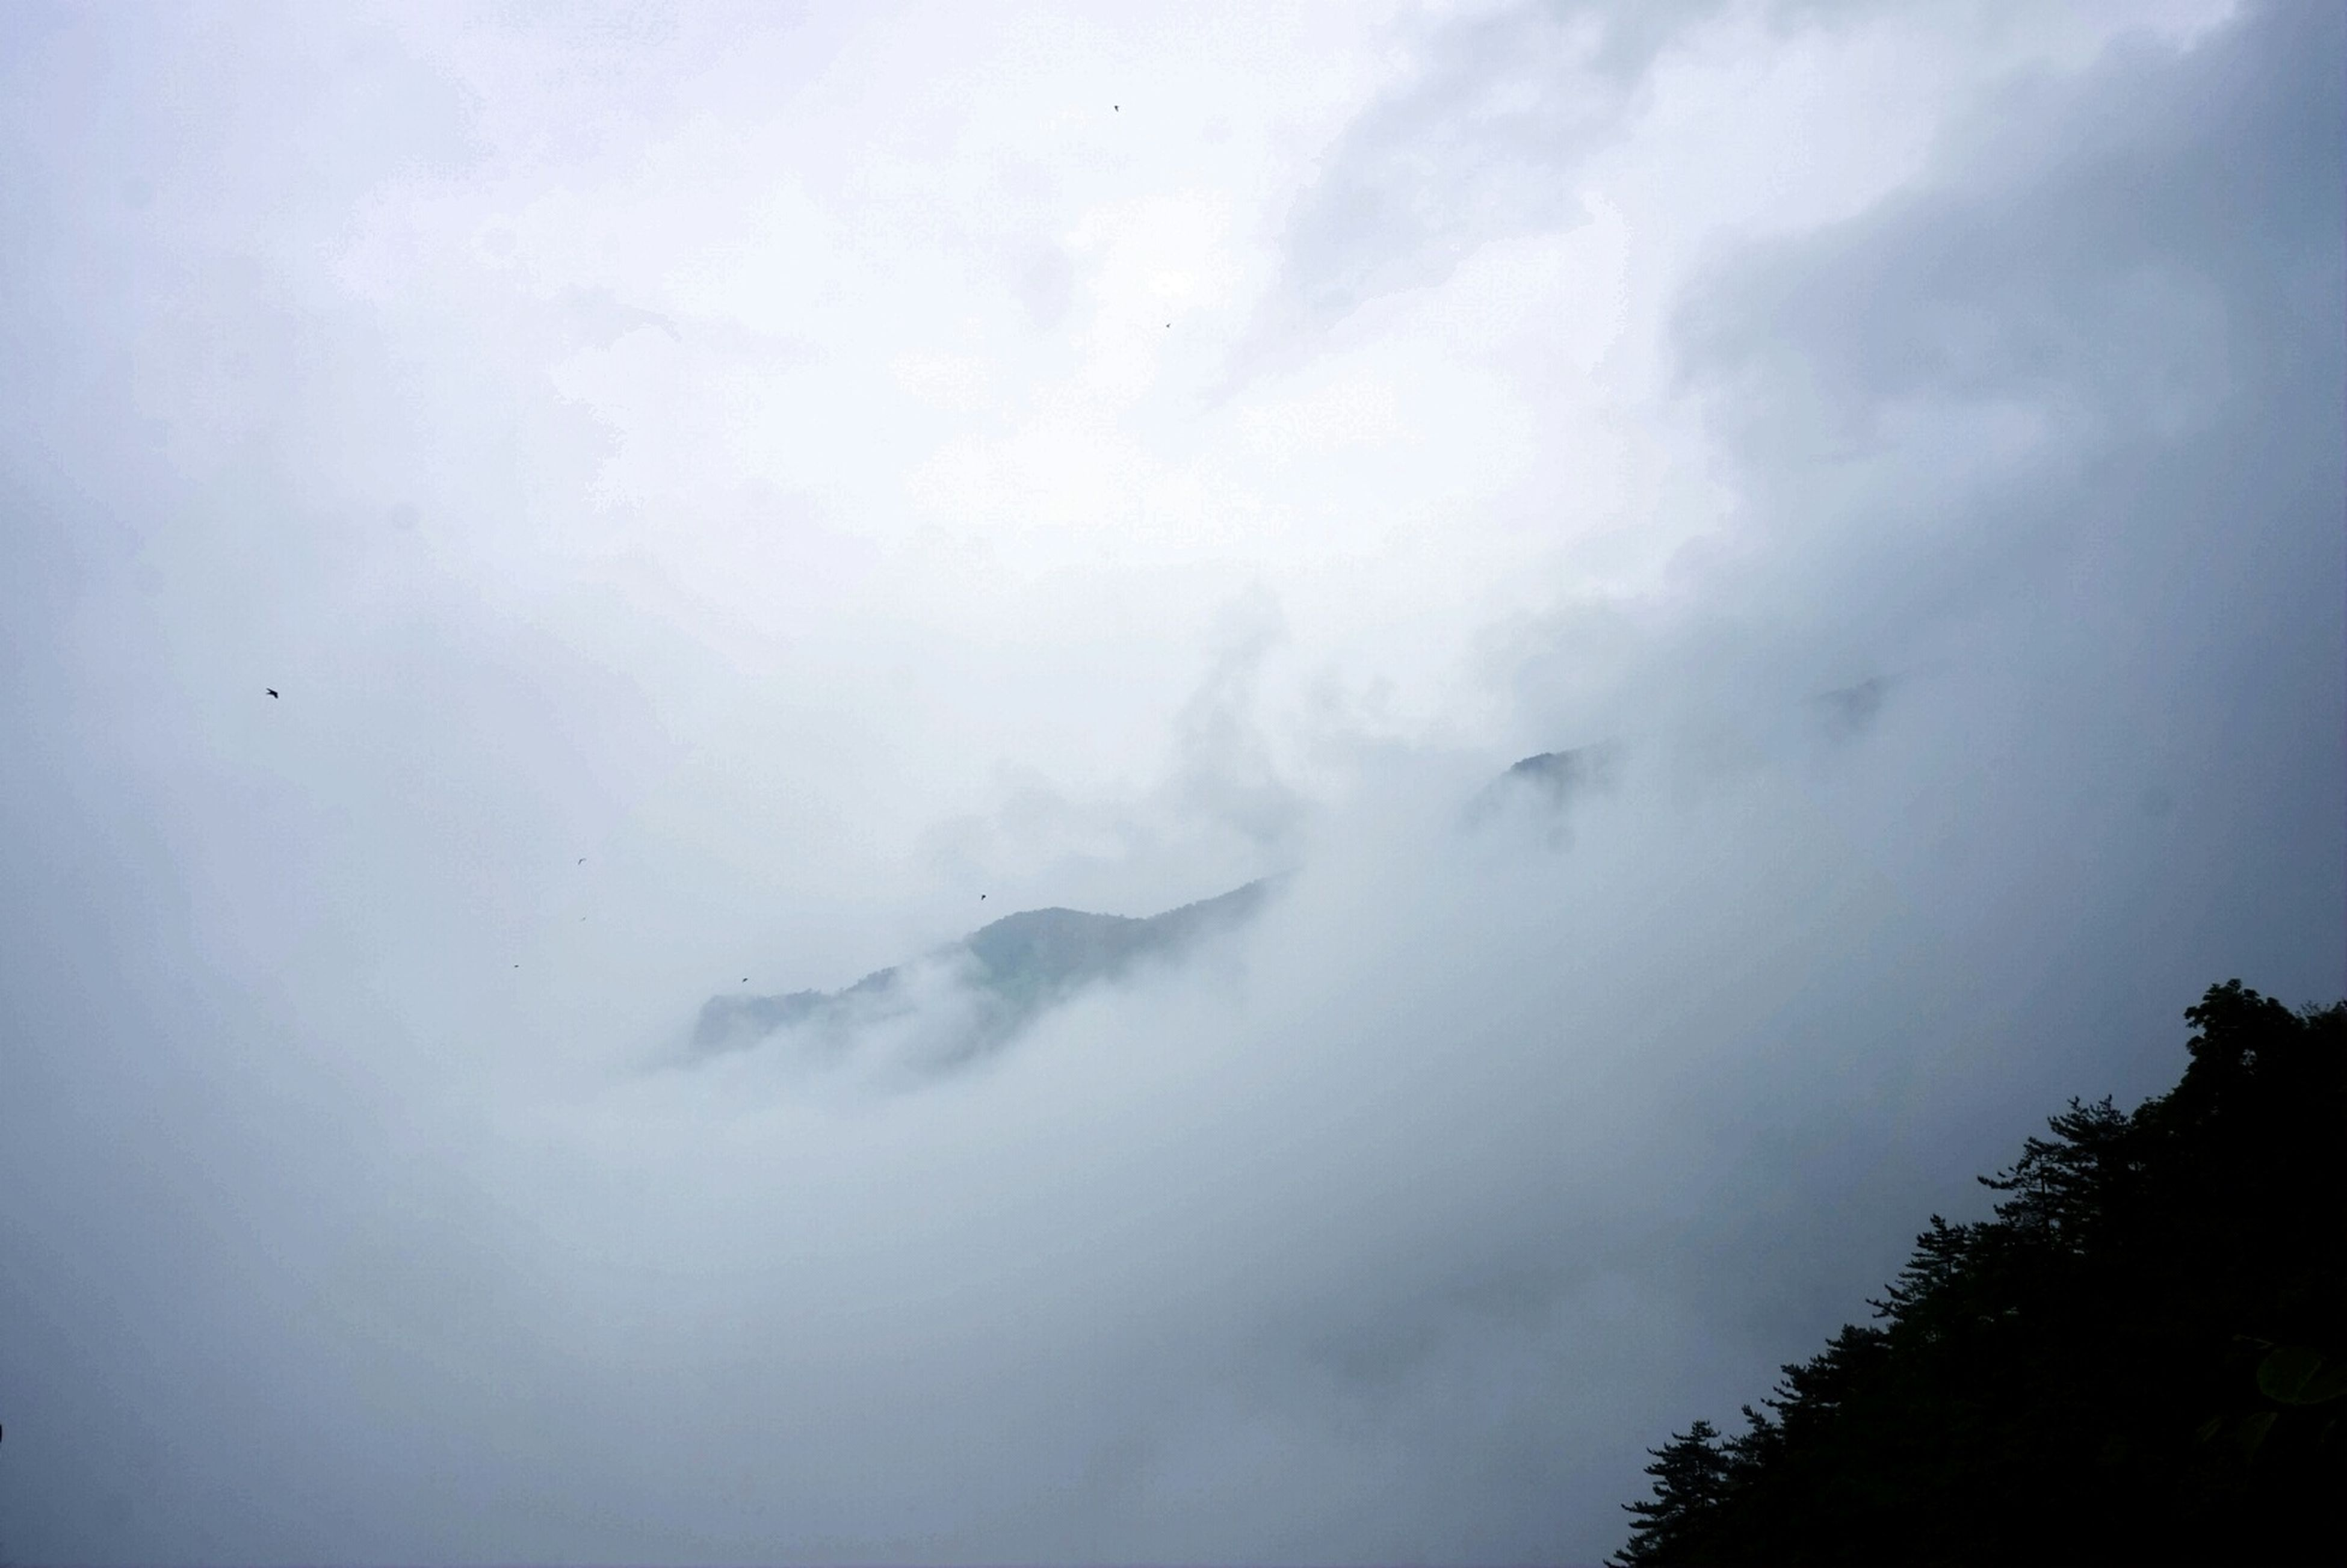 sky, weather, scenics, beauty in nature, cloud - sky, tranquility, tranquil scene, nature, cloudy, low angle view, tree, overcast, idyllic, cloud, fog, outdoors, no people, day, majestic, cloudscape